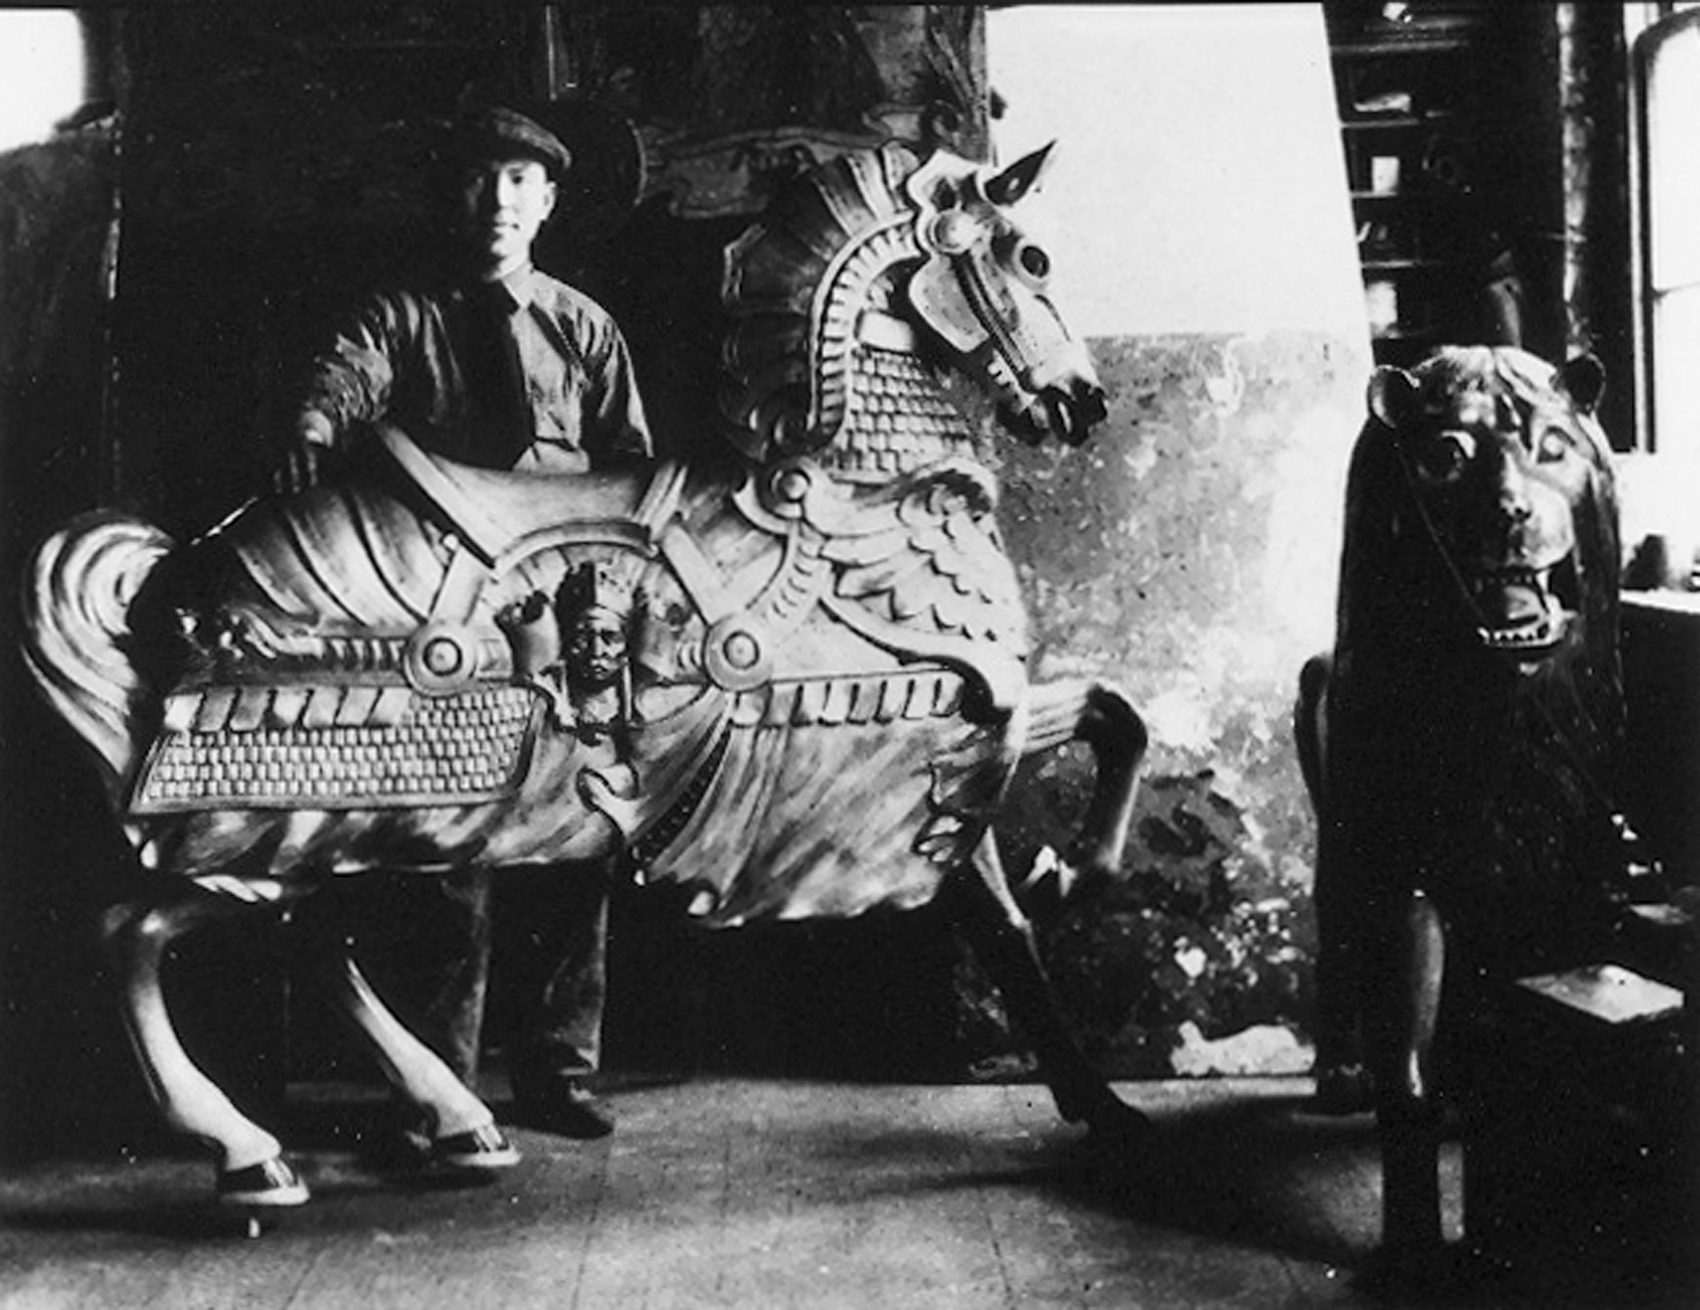 Ca-1920s-Wm-Dentzel-armored-carousel-horse